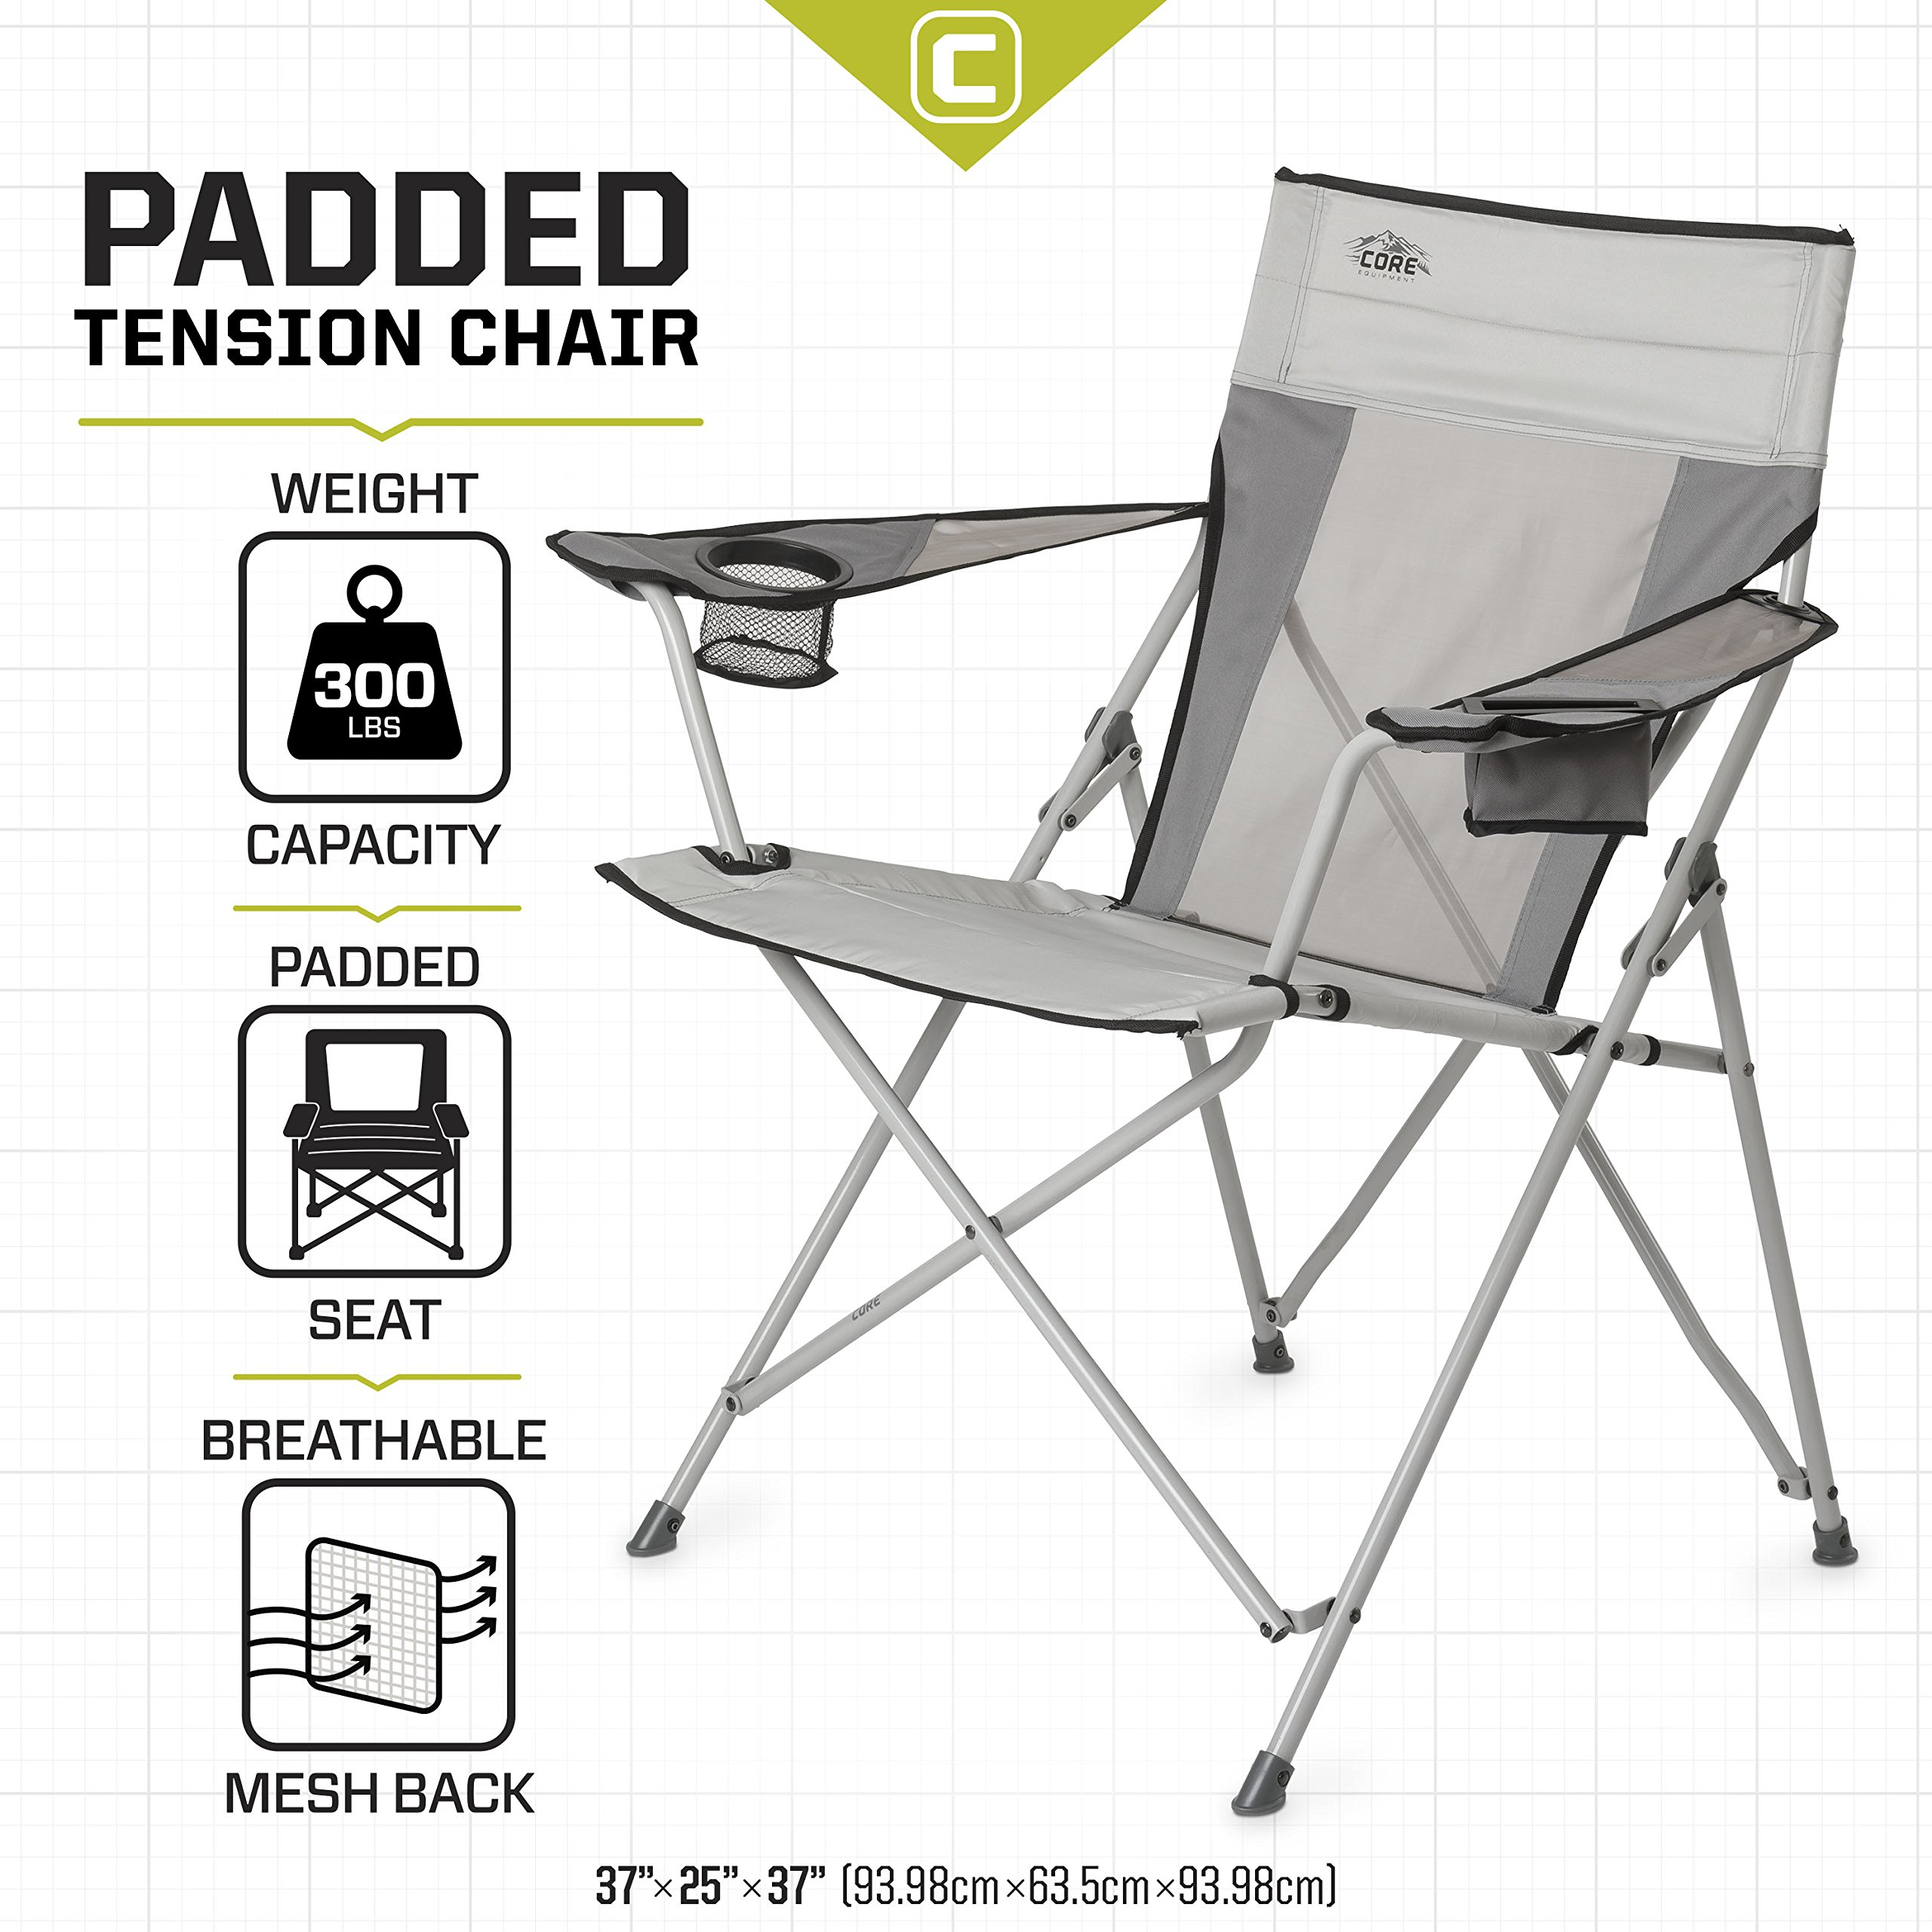 CORE Equipment Tension Chair with Carry Bag, Gray by CORE (Image #1)